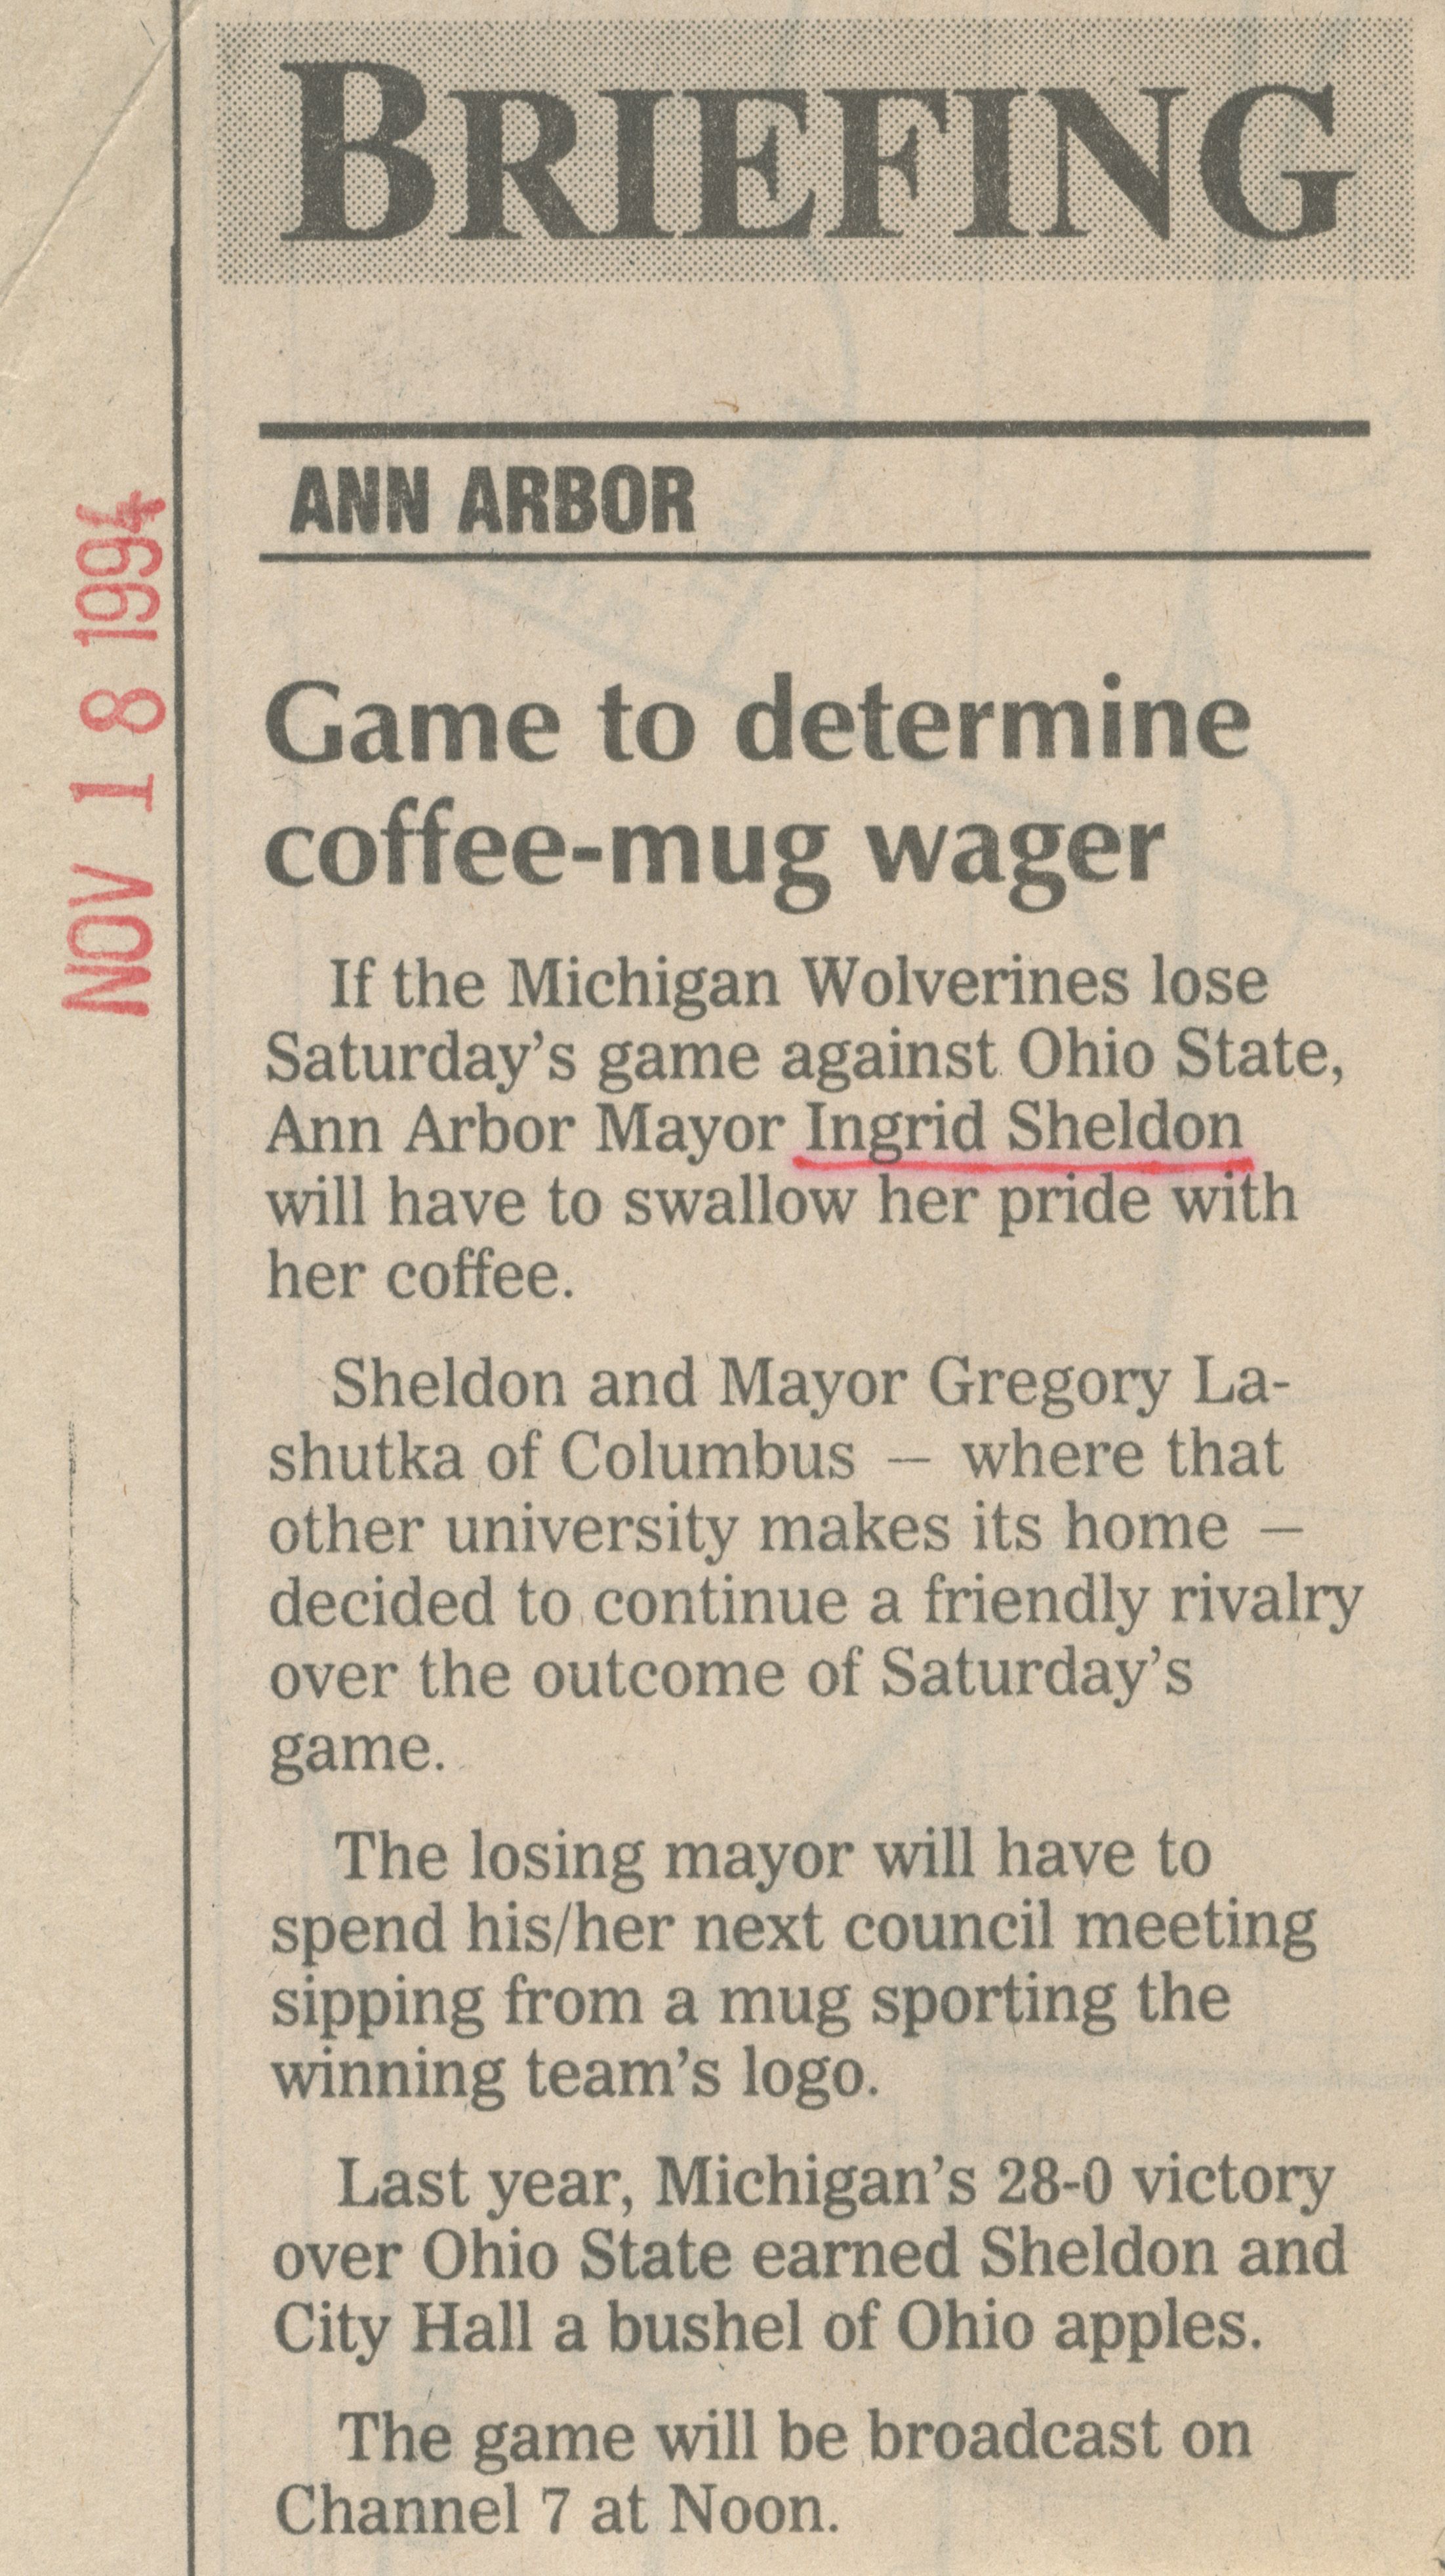 Game to determine coffee-mug wager image